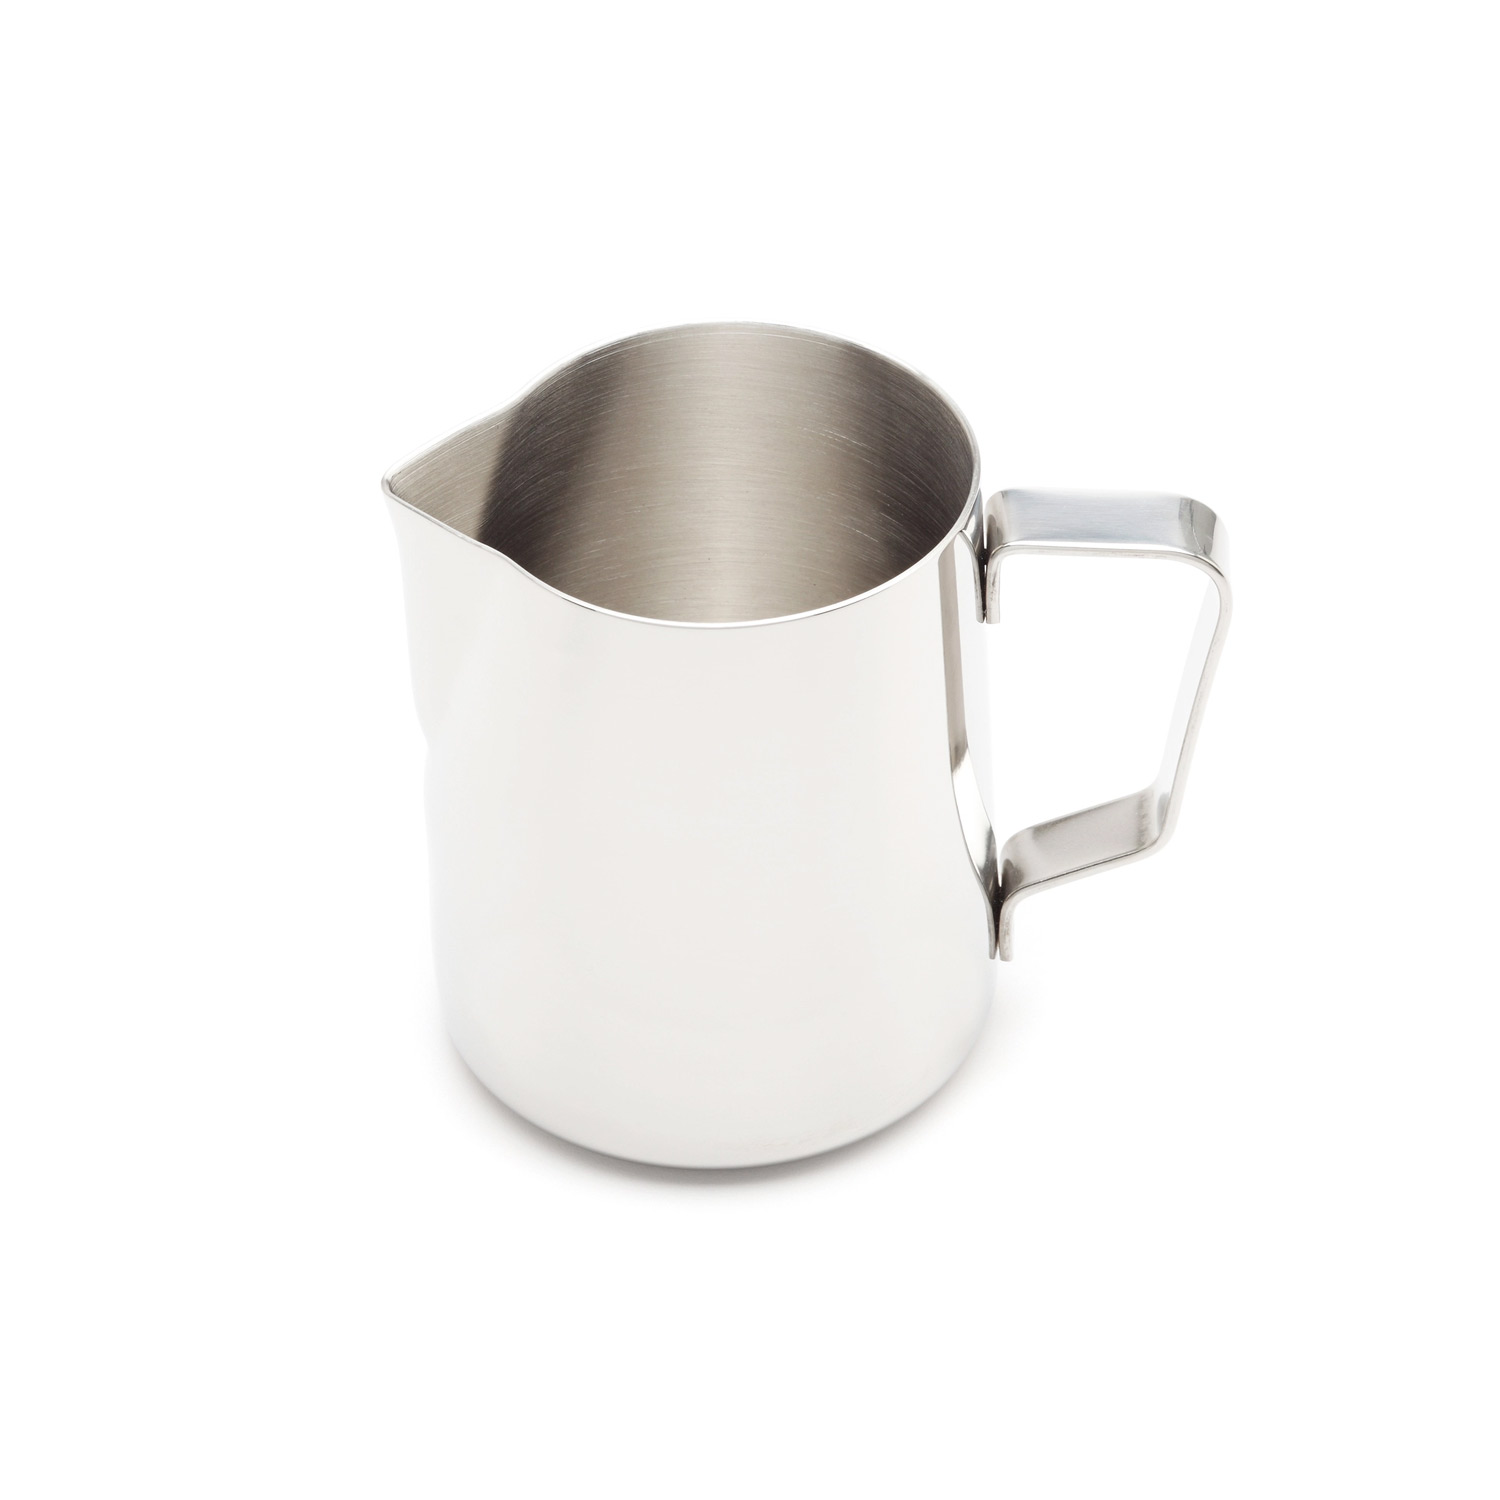 Revolution The Classic Stainless Steel Steaming Pitcher 12oz / 350ml - RV-PC12